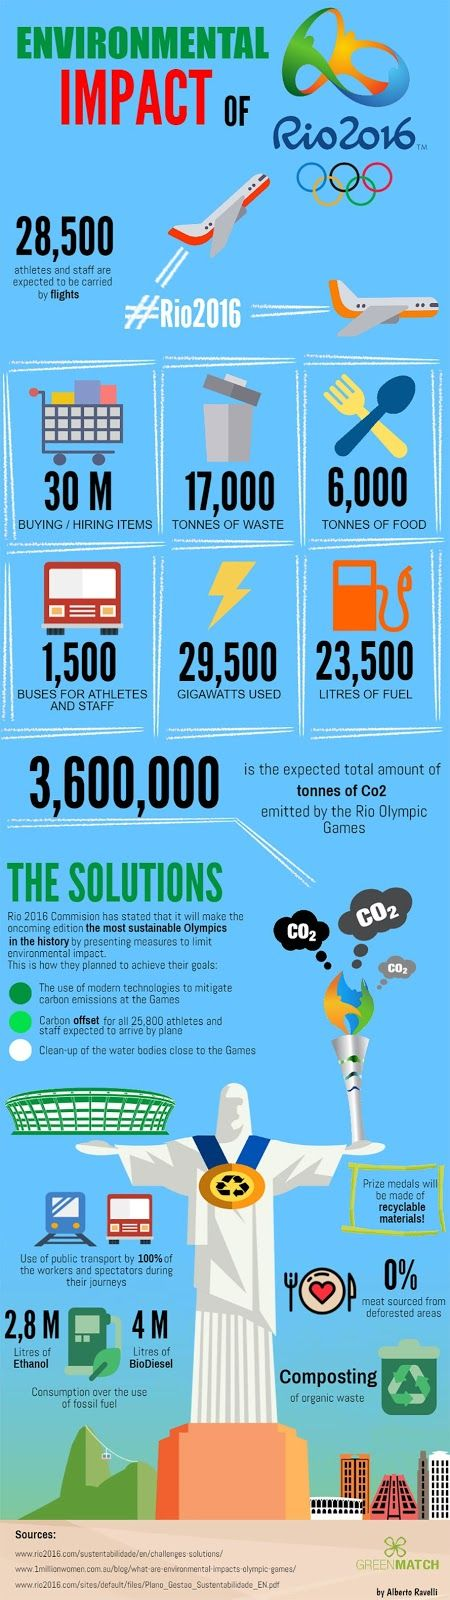 INFOGRAPHIC: The real environmental impact of the 2016 Rio Olympics